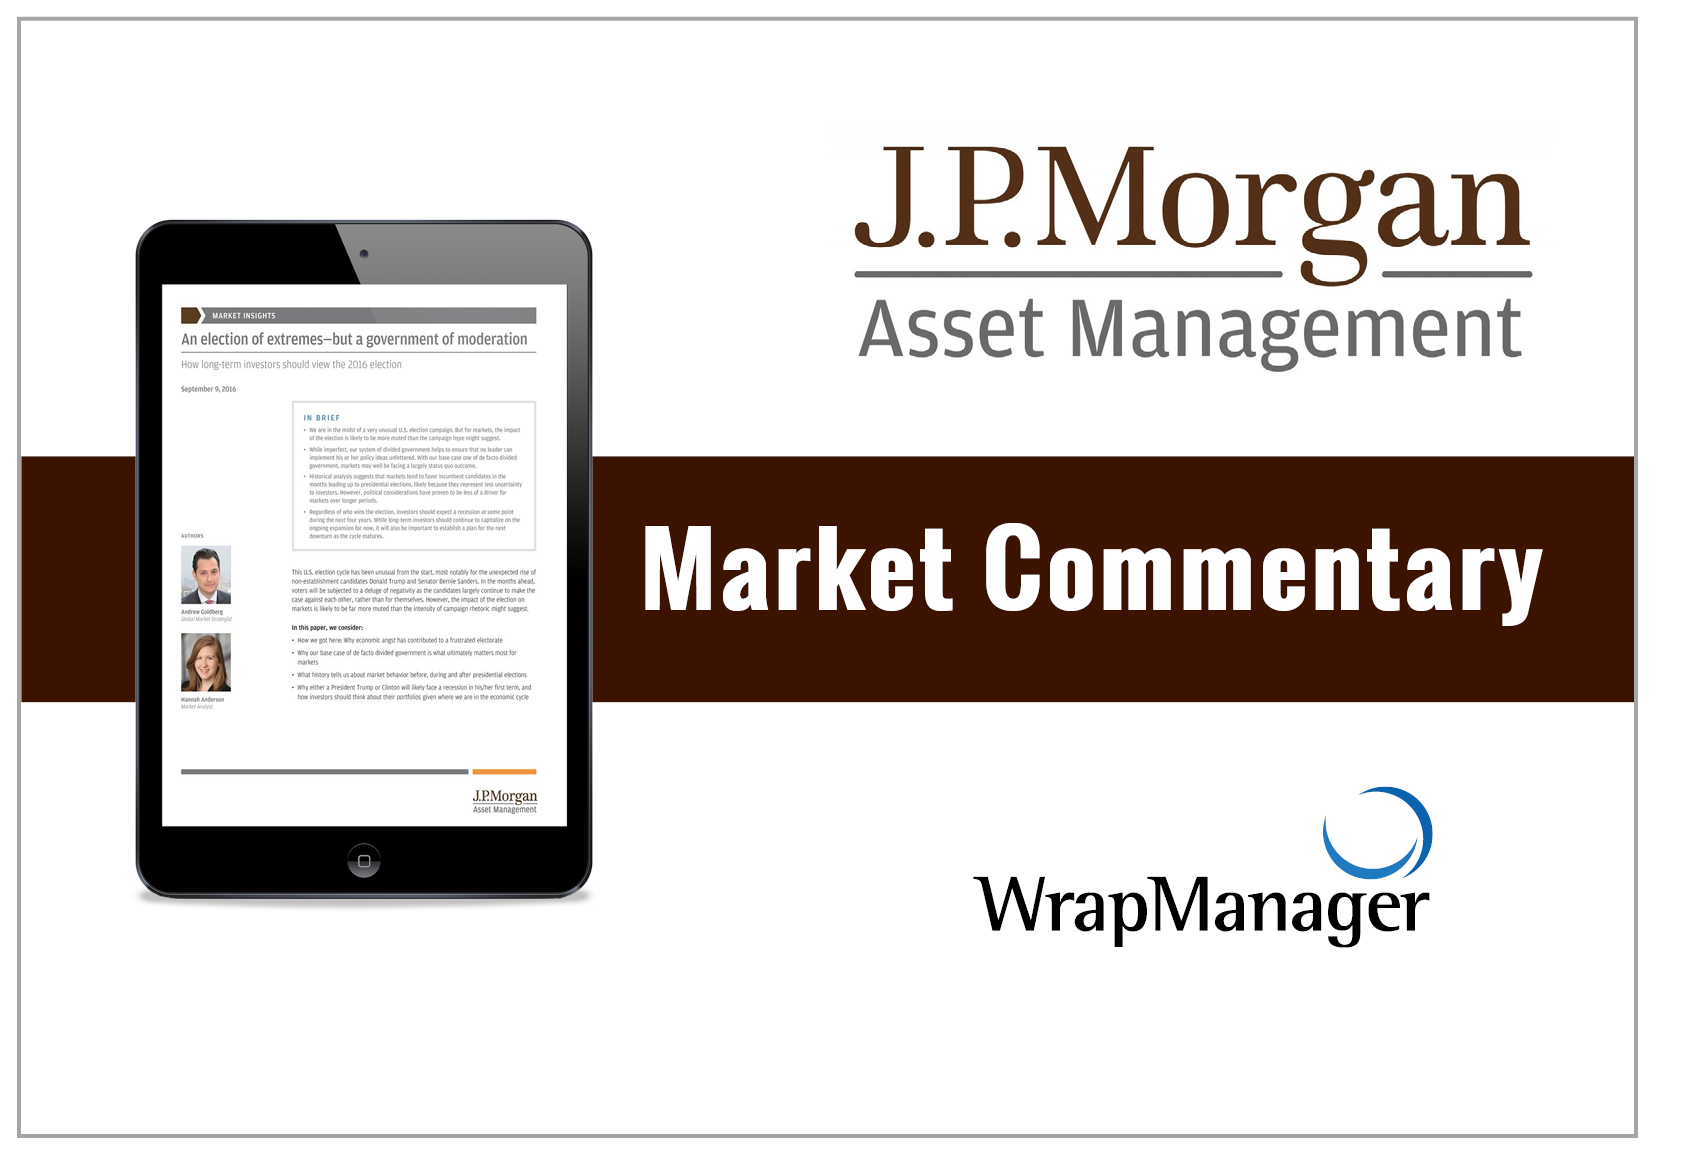 JP Morgan Sees Potential in Europe, Emerging Markets